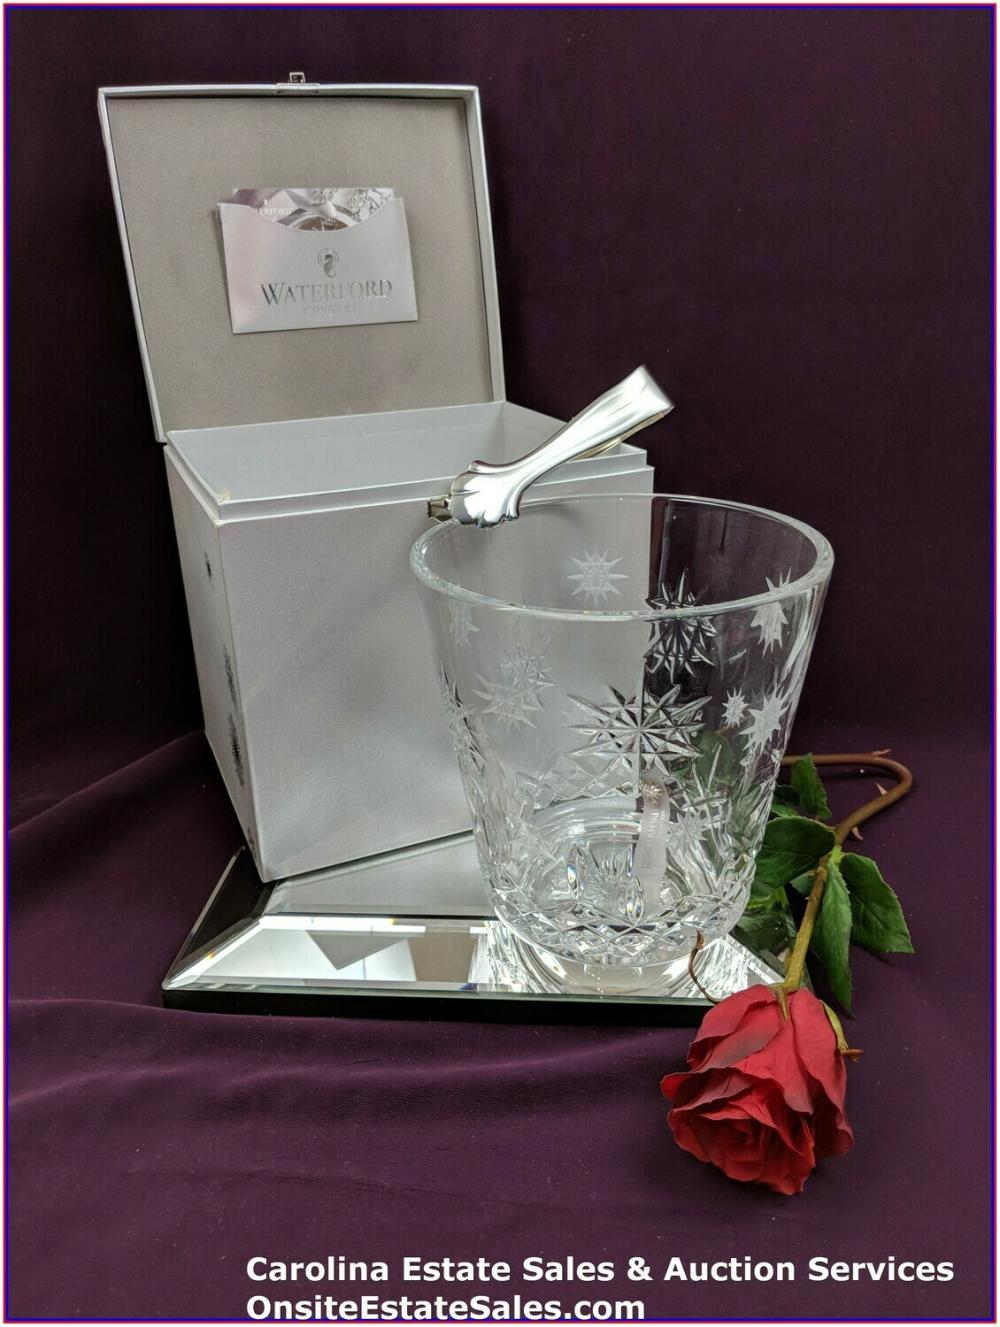 Waterford Crystal 2011 Snowflake Wish for Joy Ice Bucket 1st Ed. Lismore Cut with Box